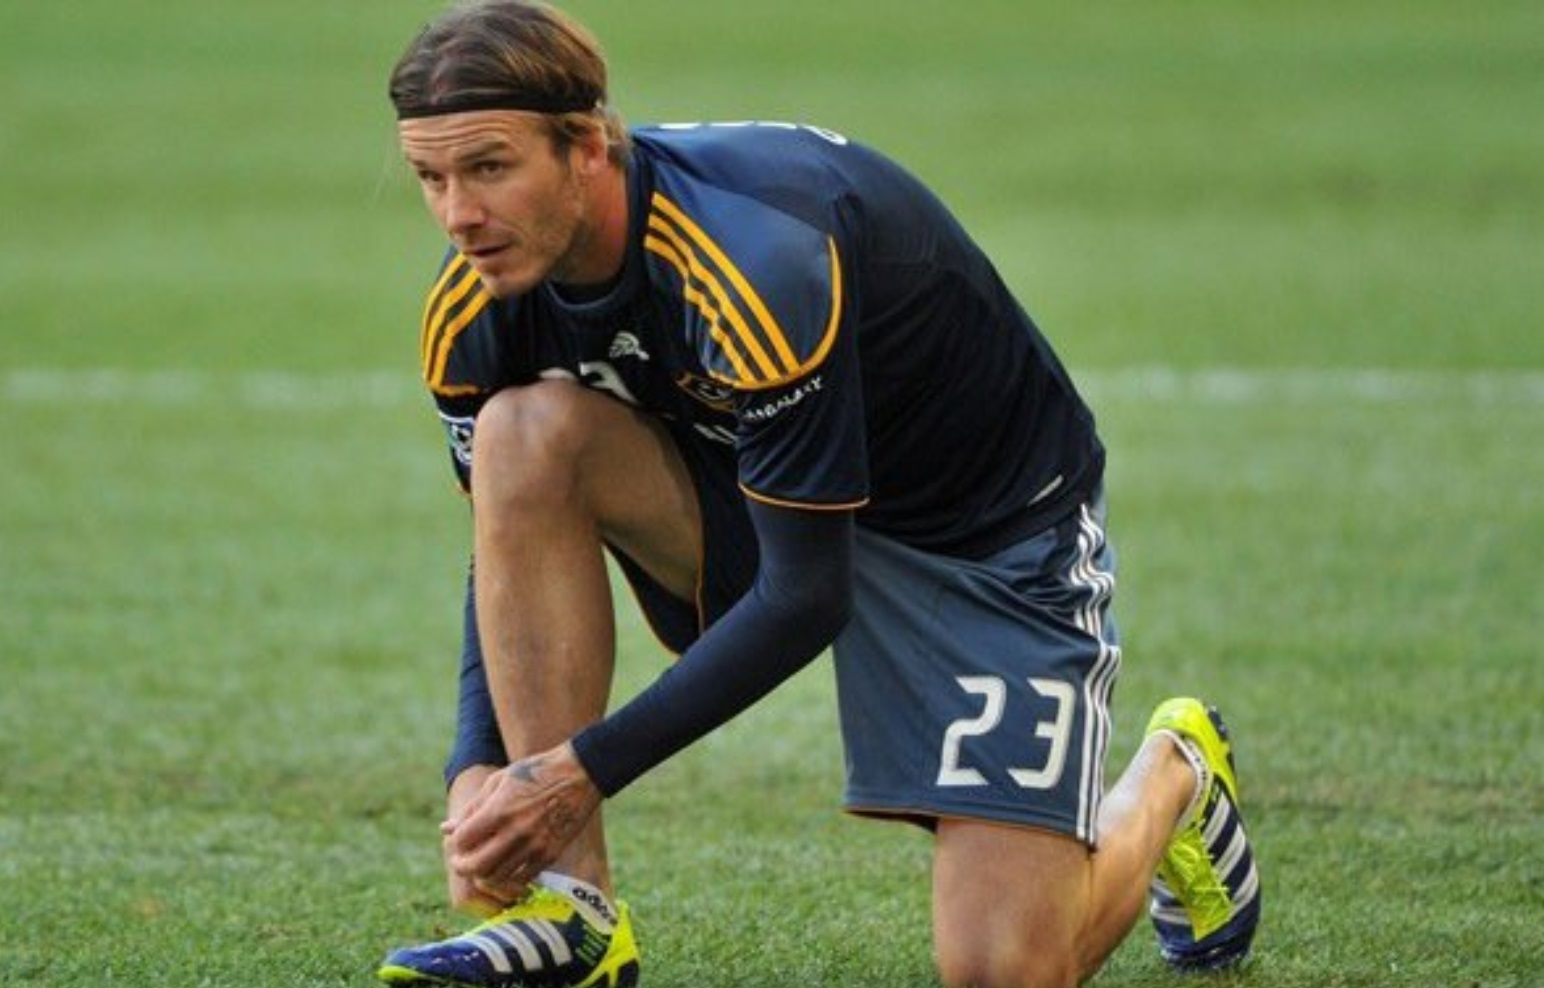 Beckham legs insured for biggest money policy